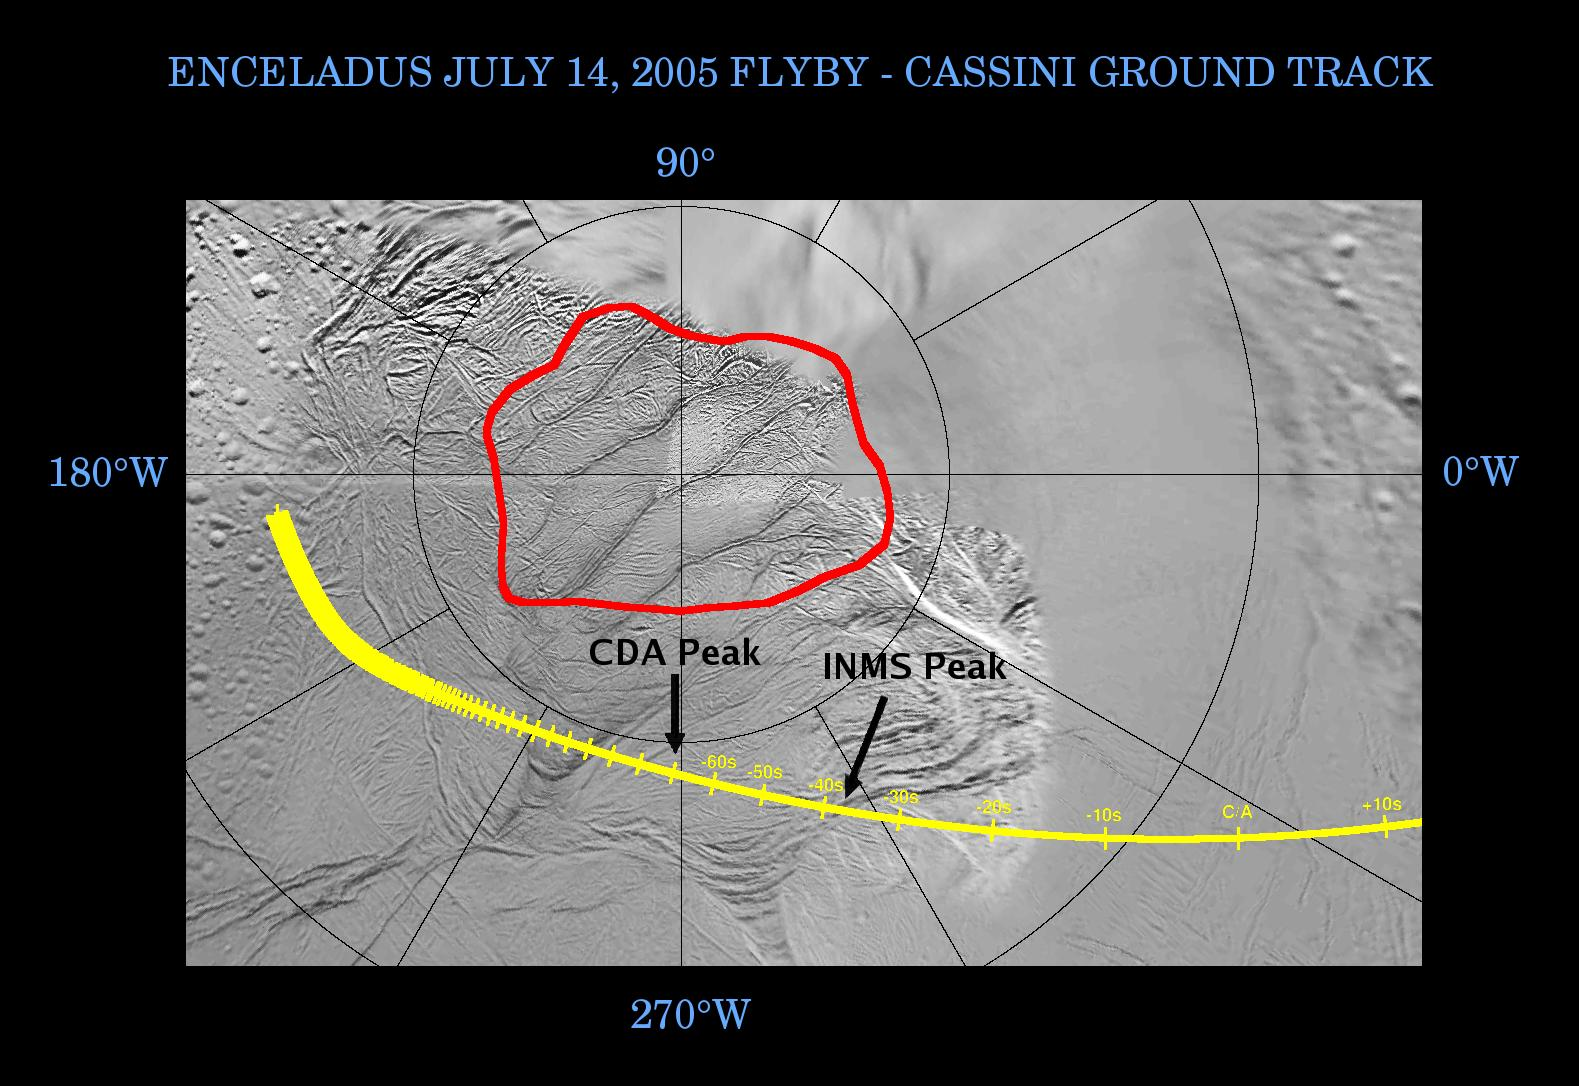 This graphic shows Cassini's path, or ground track, as it crossed over the surface of Enceladus near the time of closest approach during the flyby on July 14, 2005.